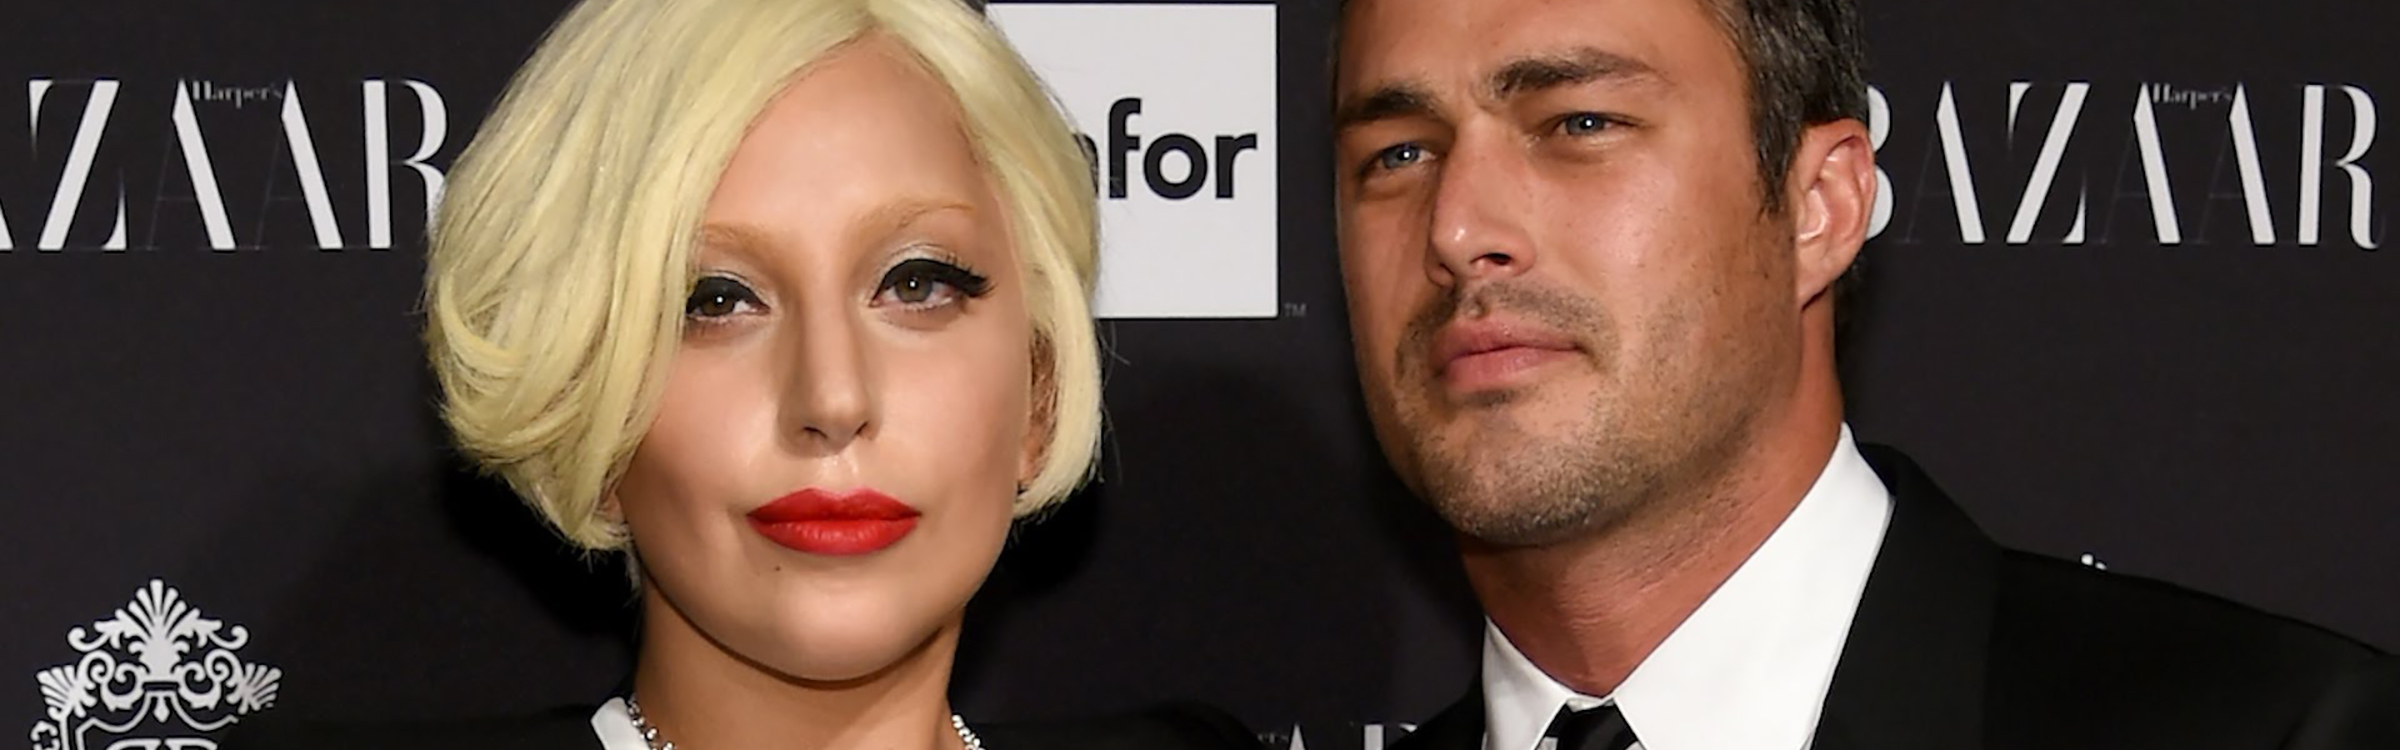 Lady gaga and taylor kinney header